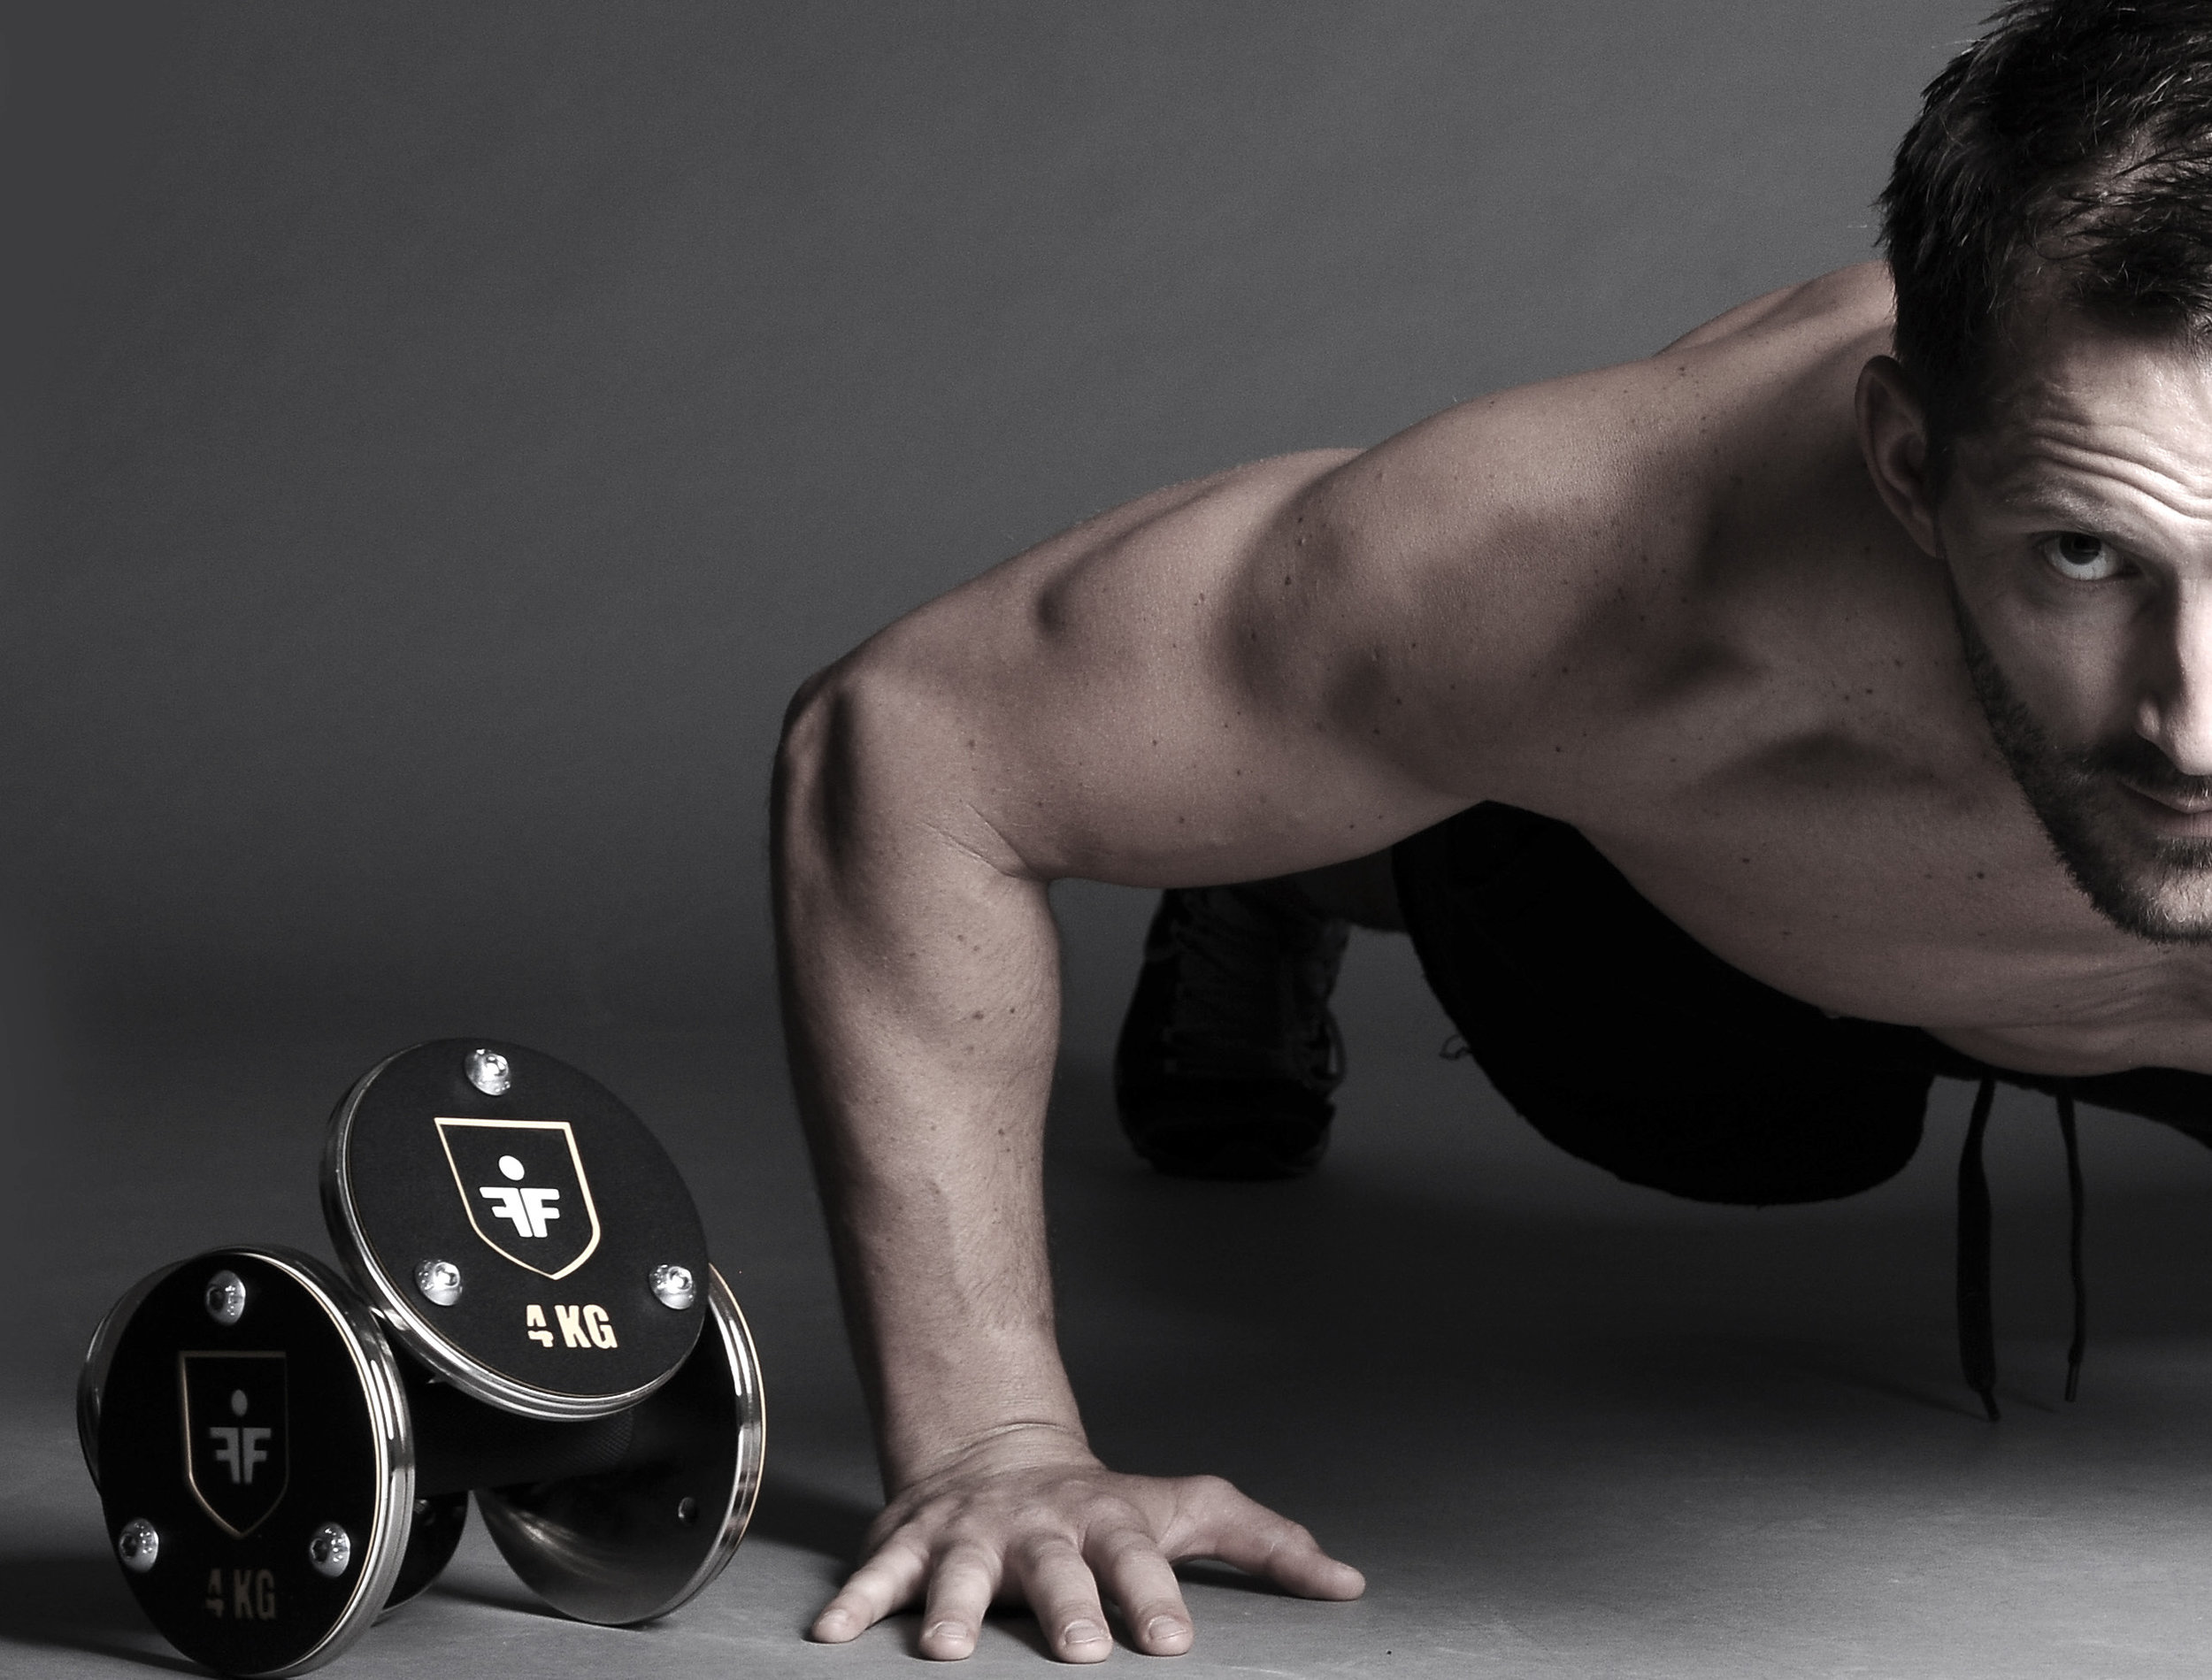 CLICK HERE to learn more about Tim Blakey's PHYSIOTHERAPY and 1-1 PERSONAL TRAINING business